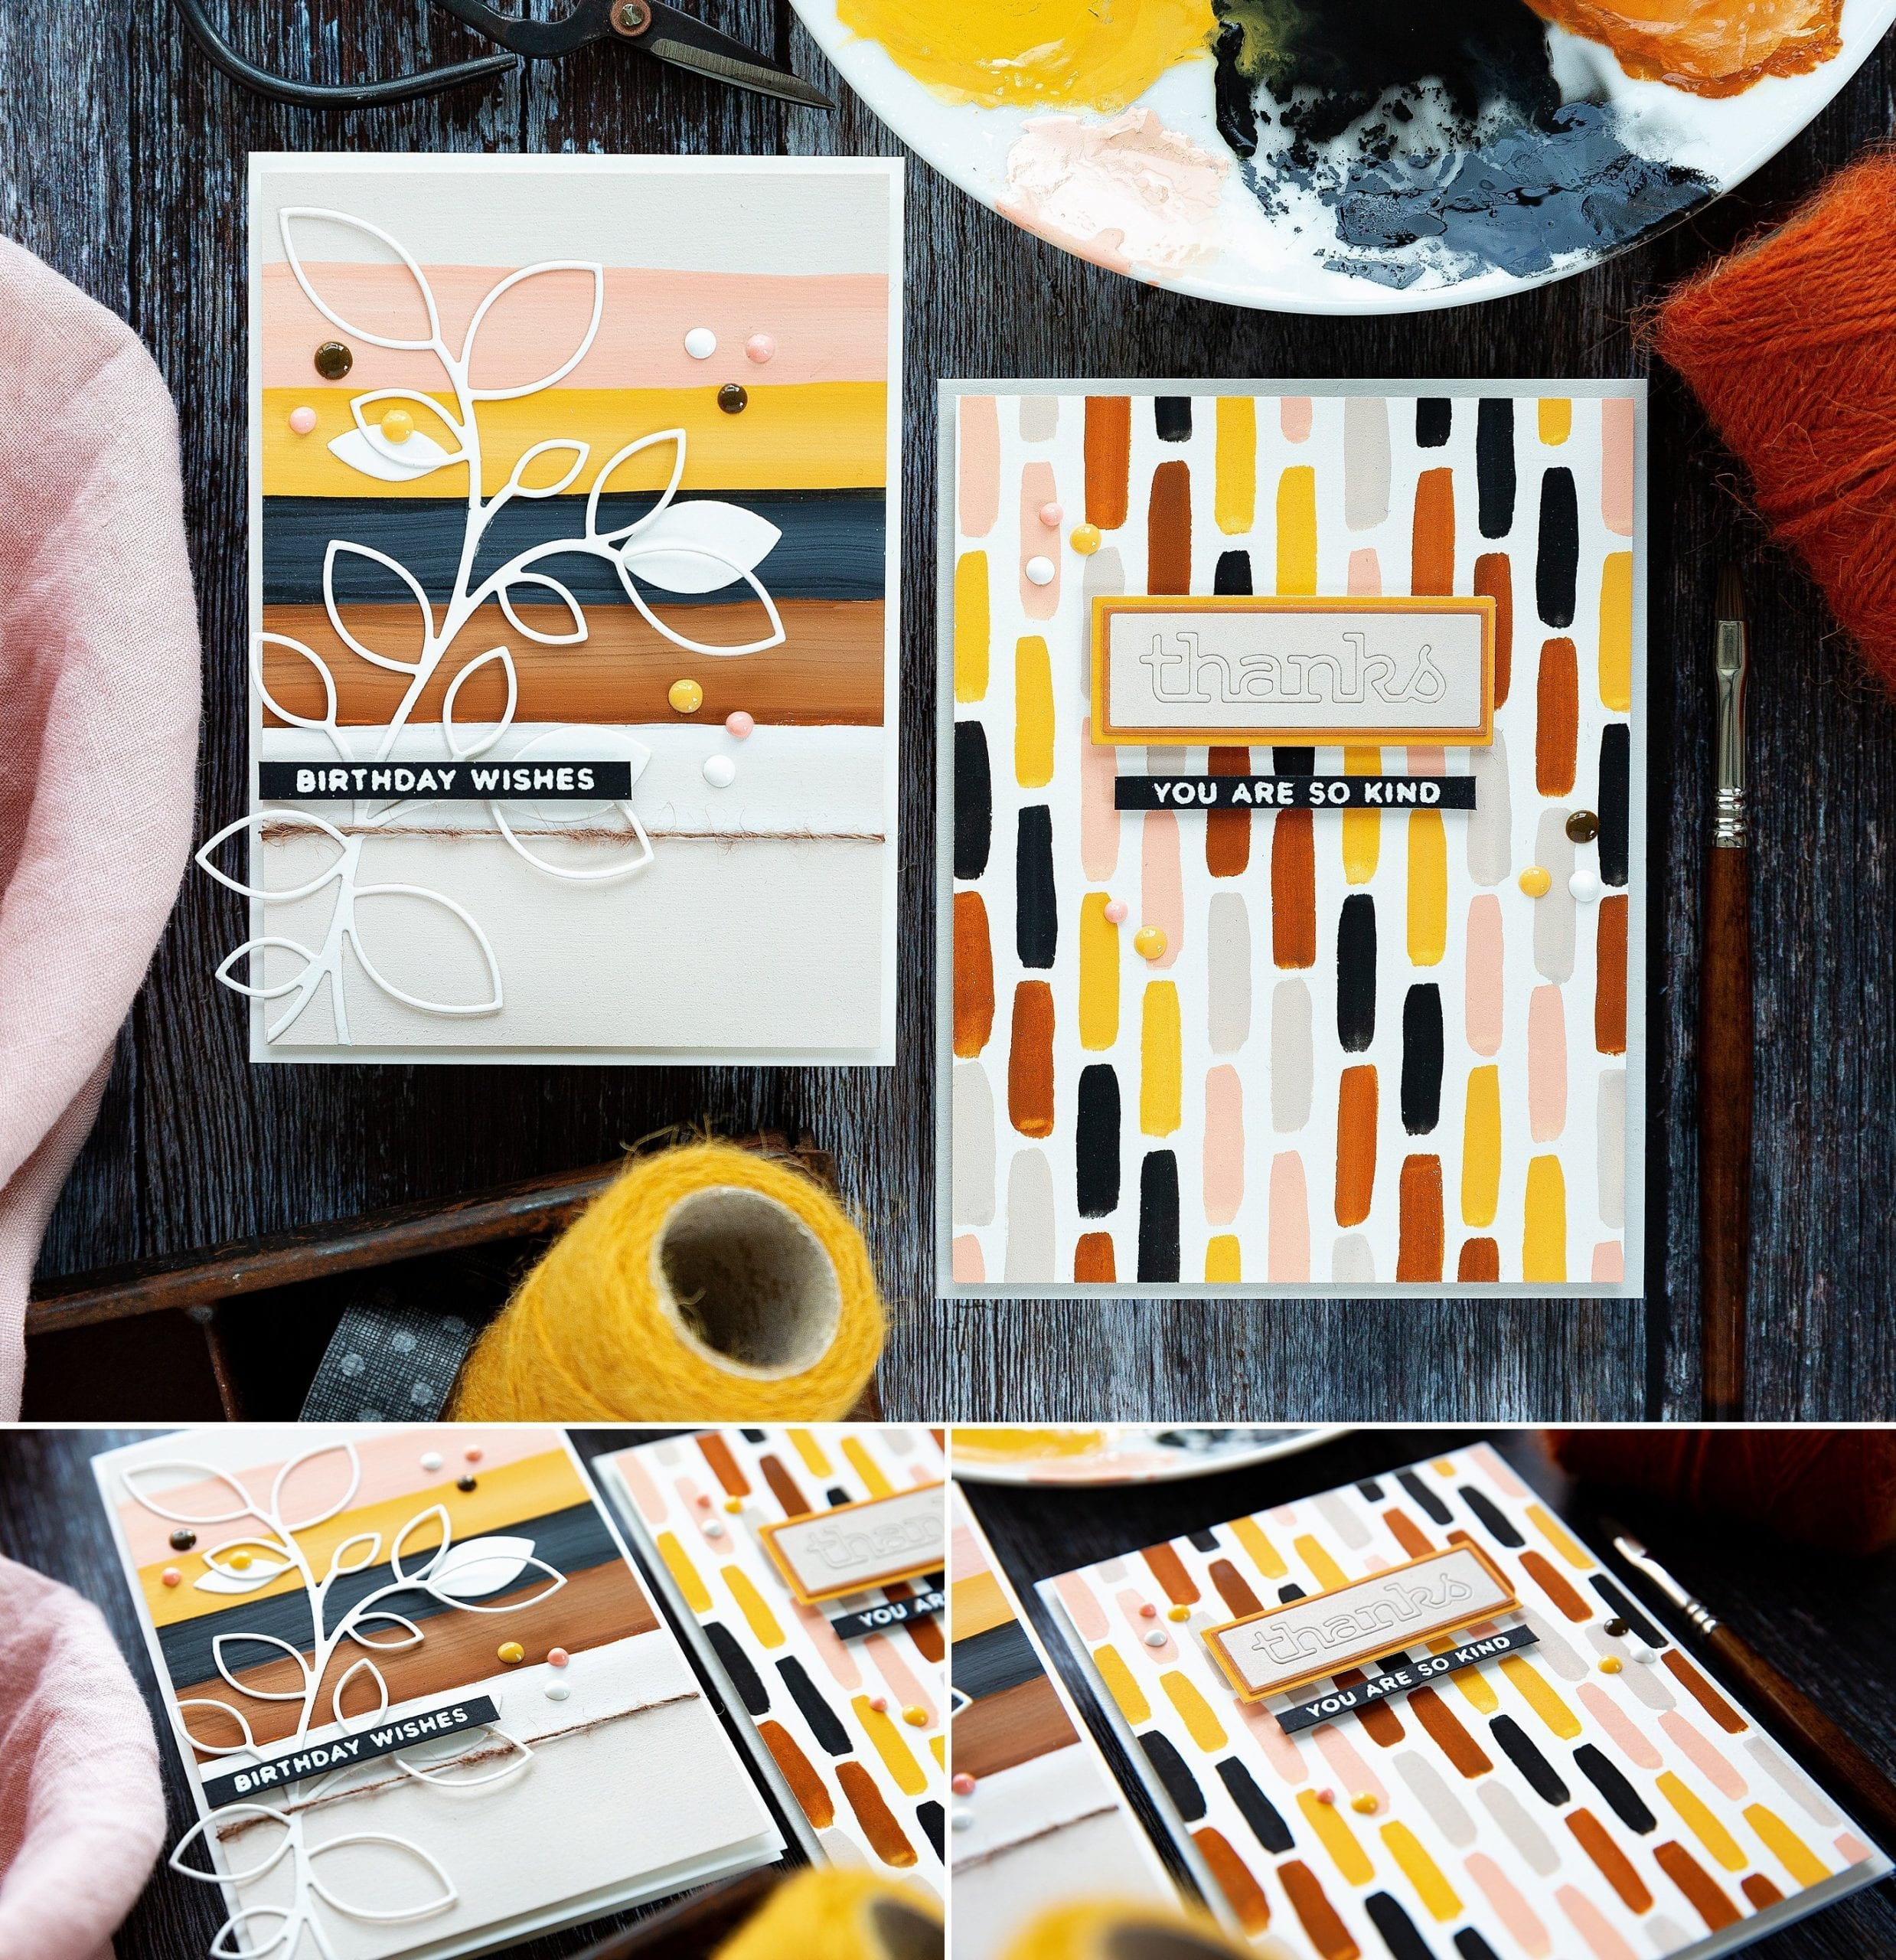 Fun gouache painted striped backgrounds. Handmade cards by Debby Hughes using gouache from Winsor & Newton and American Crafts/Paper Fashion with supplies from Simon Says Stamp. Find out more here: https://limedoodledesign.com/2019/07/video-simple-paint-striped-backgrounds/